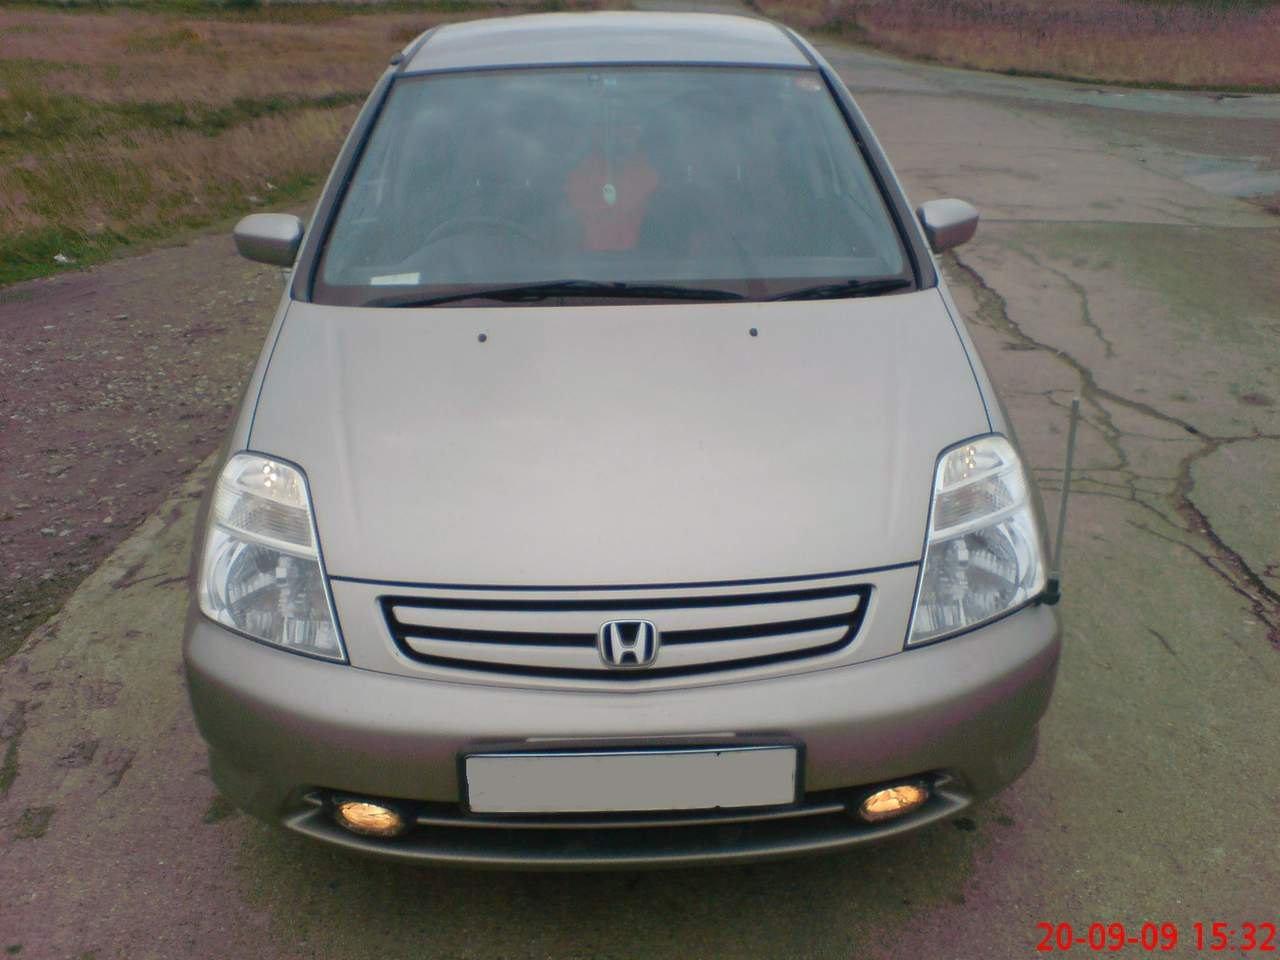 2002 Honda Stream Photos, Gasoline, Automatic For Sale